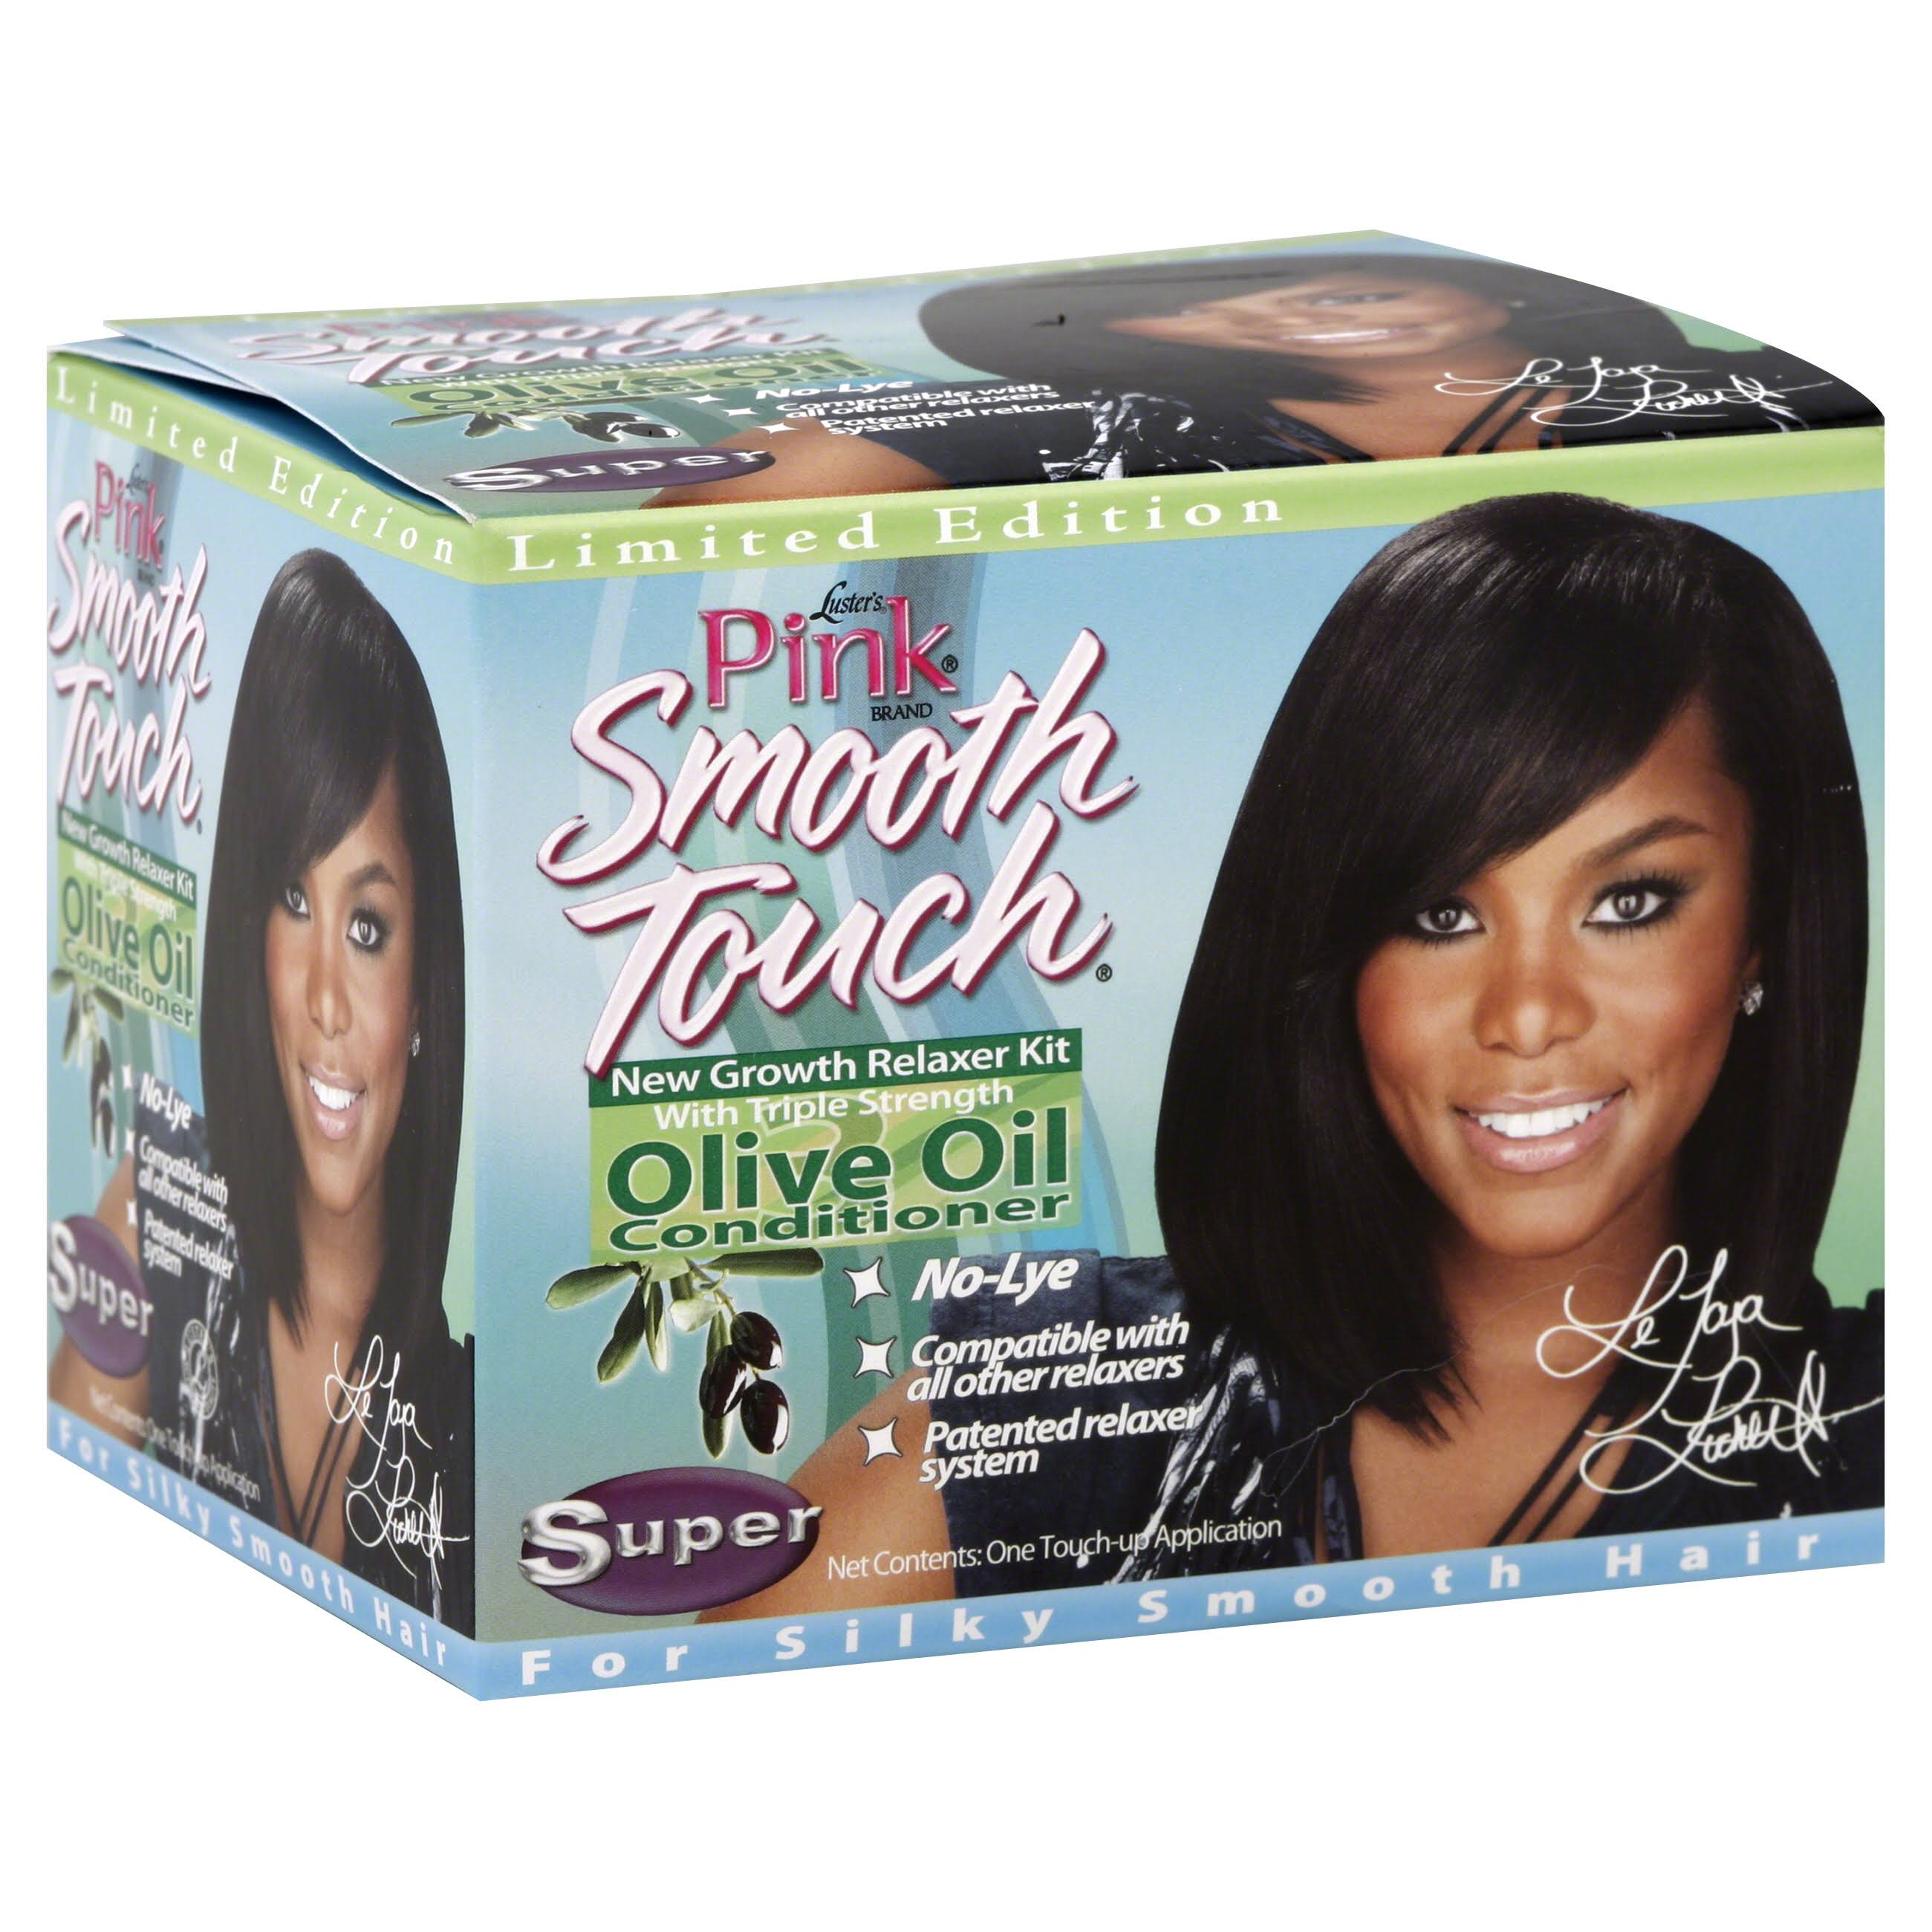 Luster's Pink Smooth Touch Growth Relaxer Kit